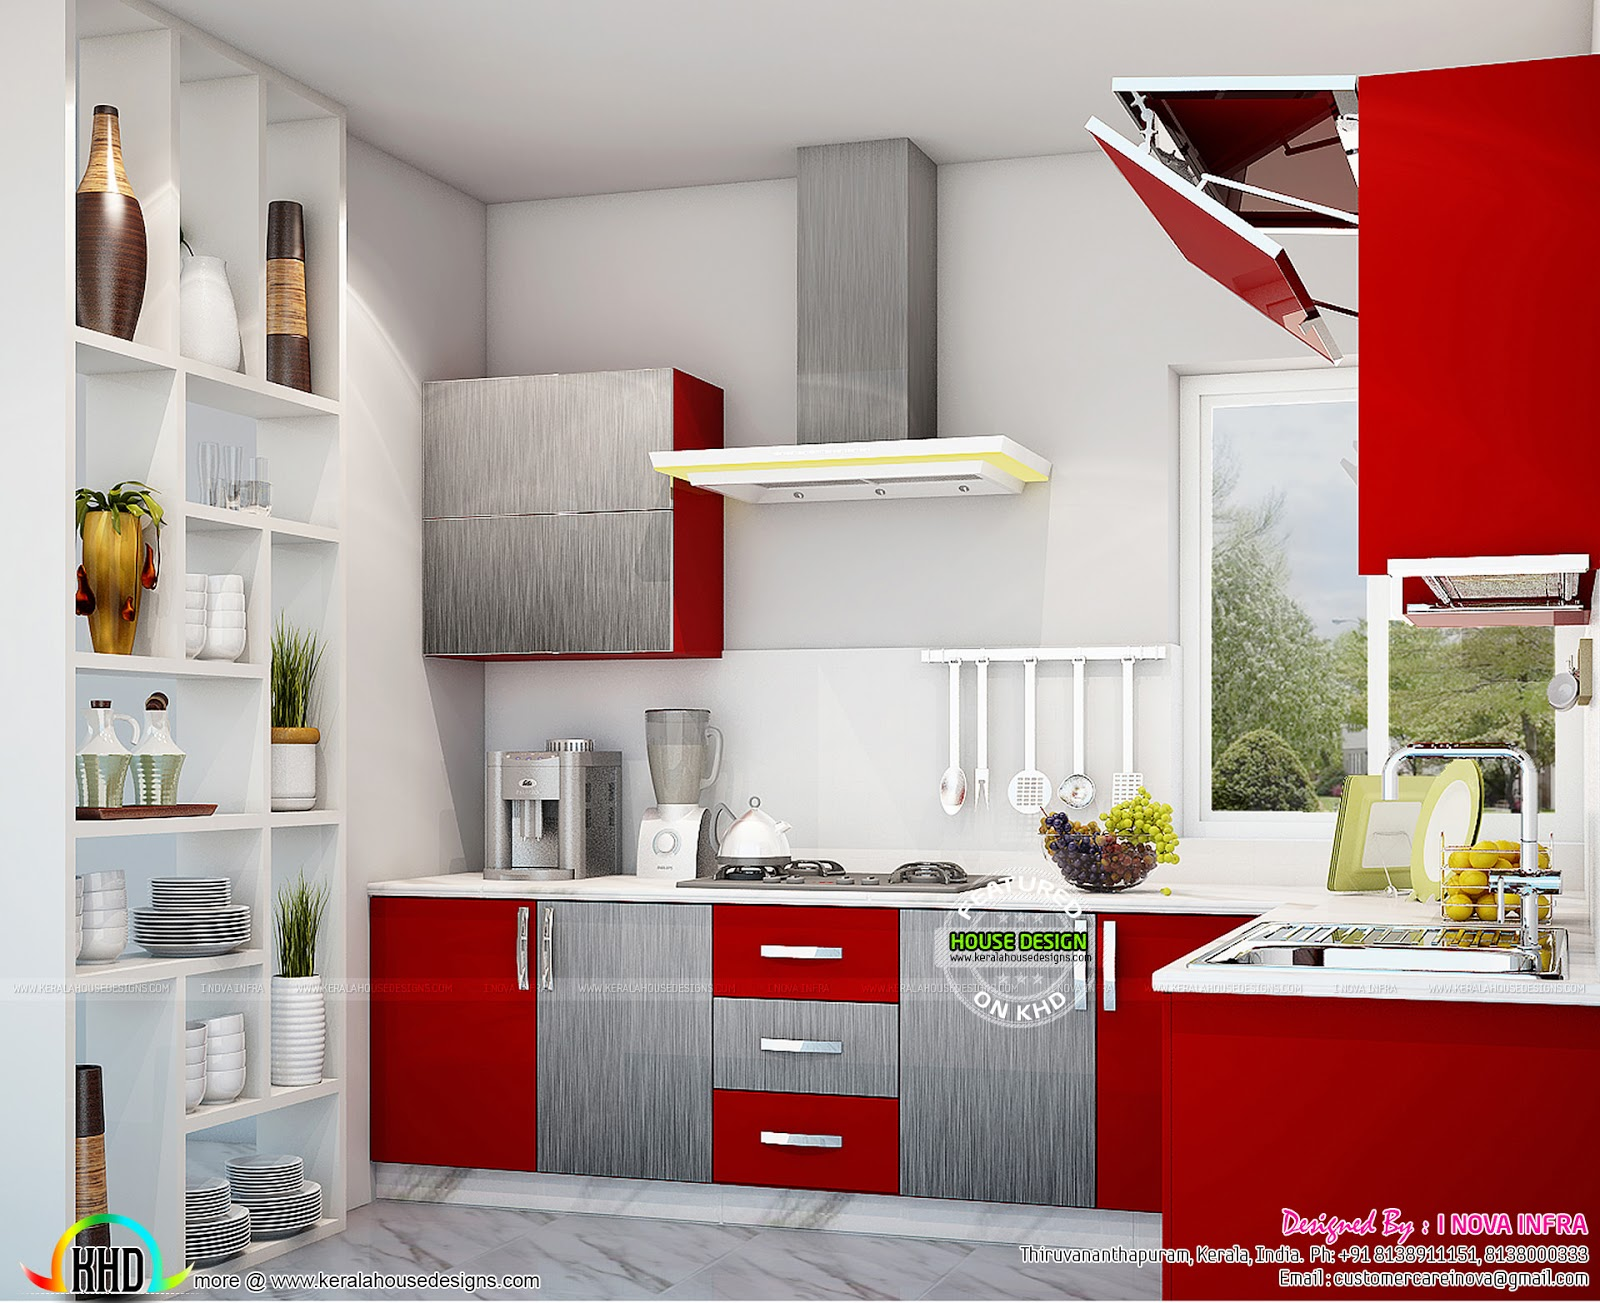 Home taylor interiors - Interiors For Kitchen Kitchen Interior Works At Trivandrum Kerala Home Design